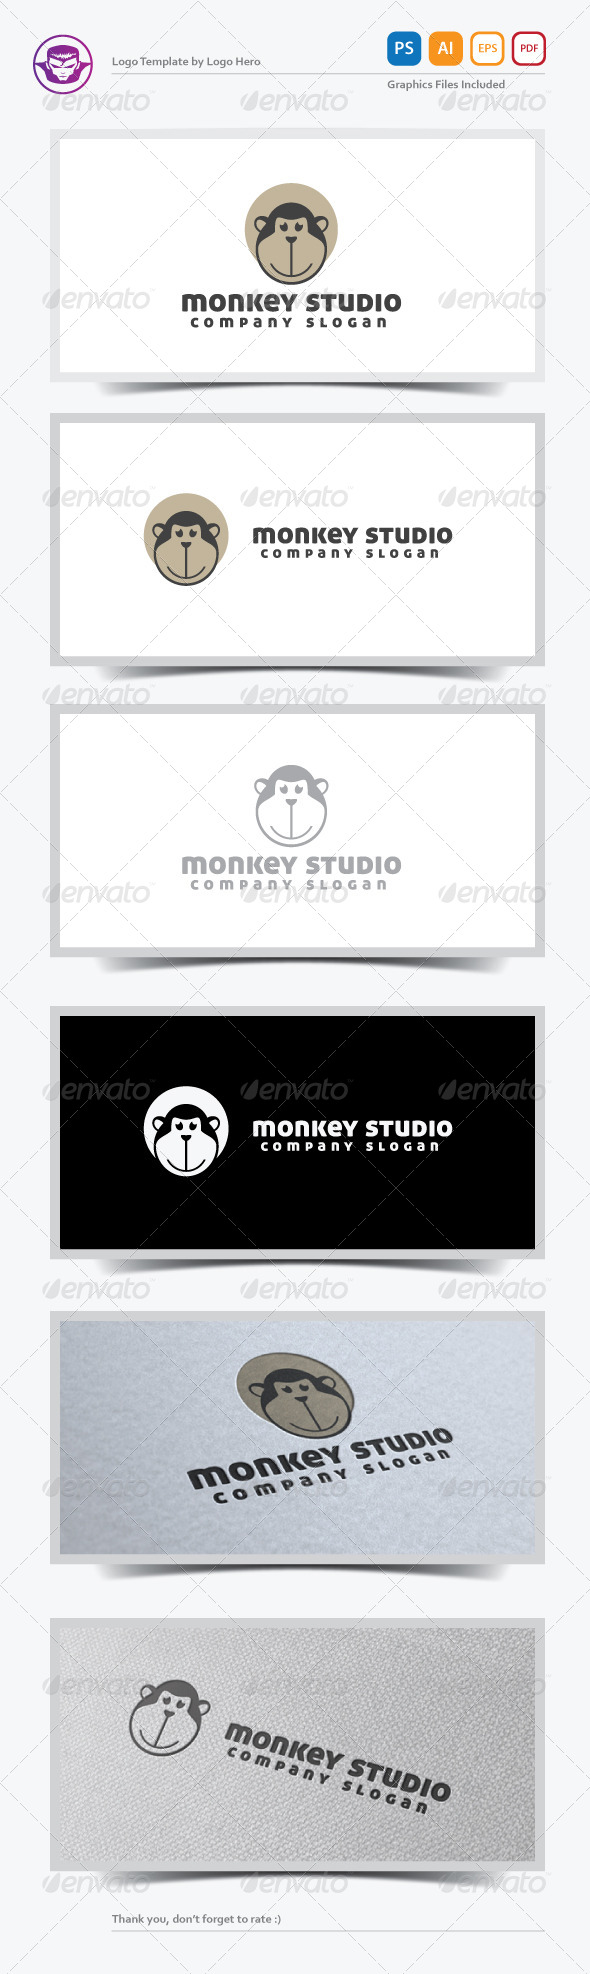 GraphicRiver Monkey Studio Logo Template 5472027